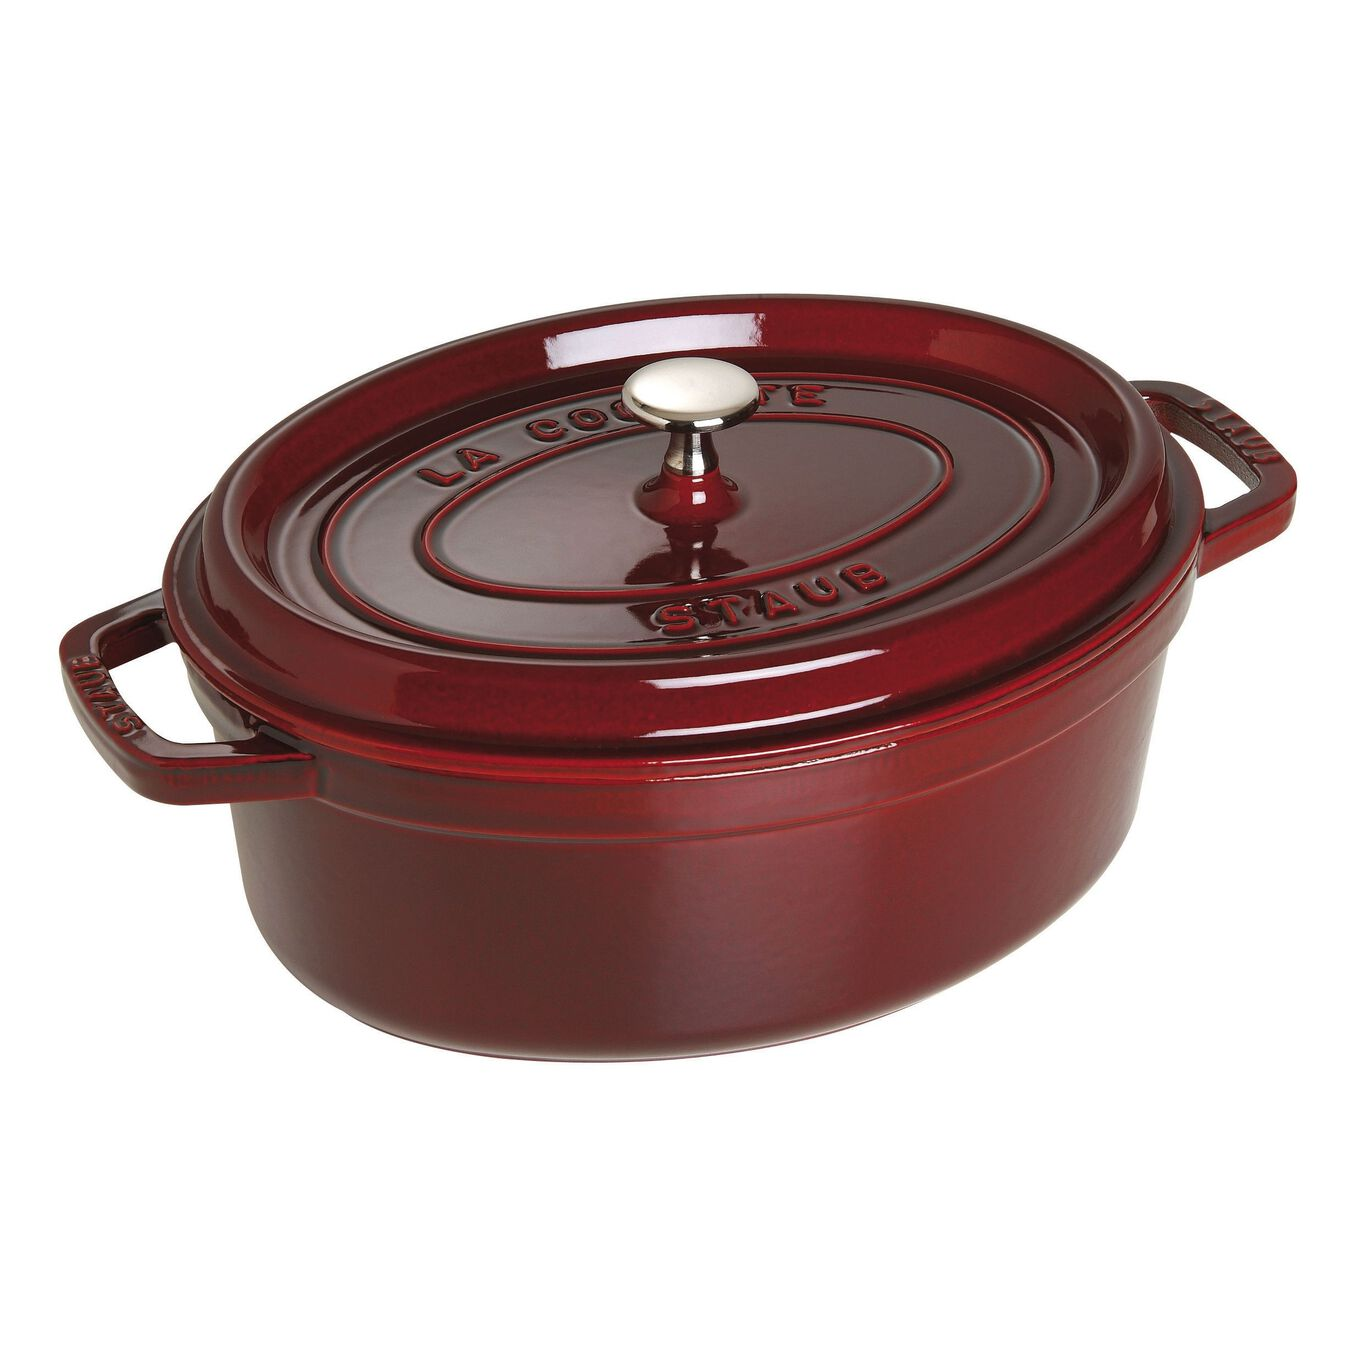 Cocotte 29 cm, oval, Grenadine-Rot, Gusseisen,,large 1